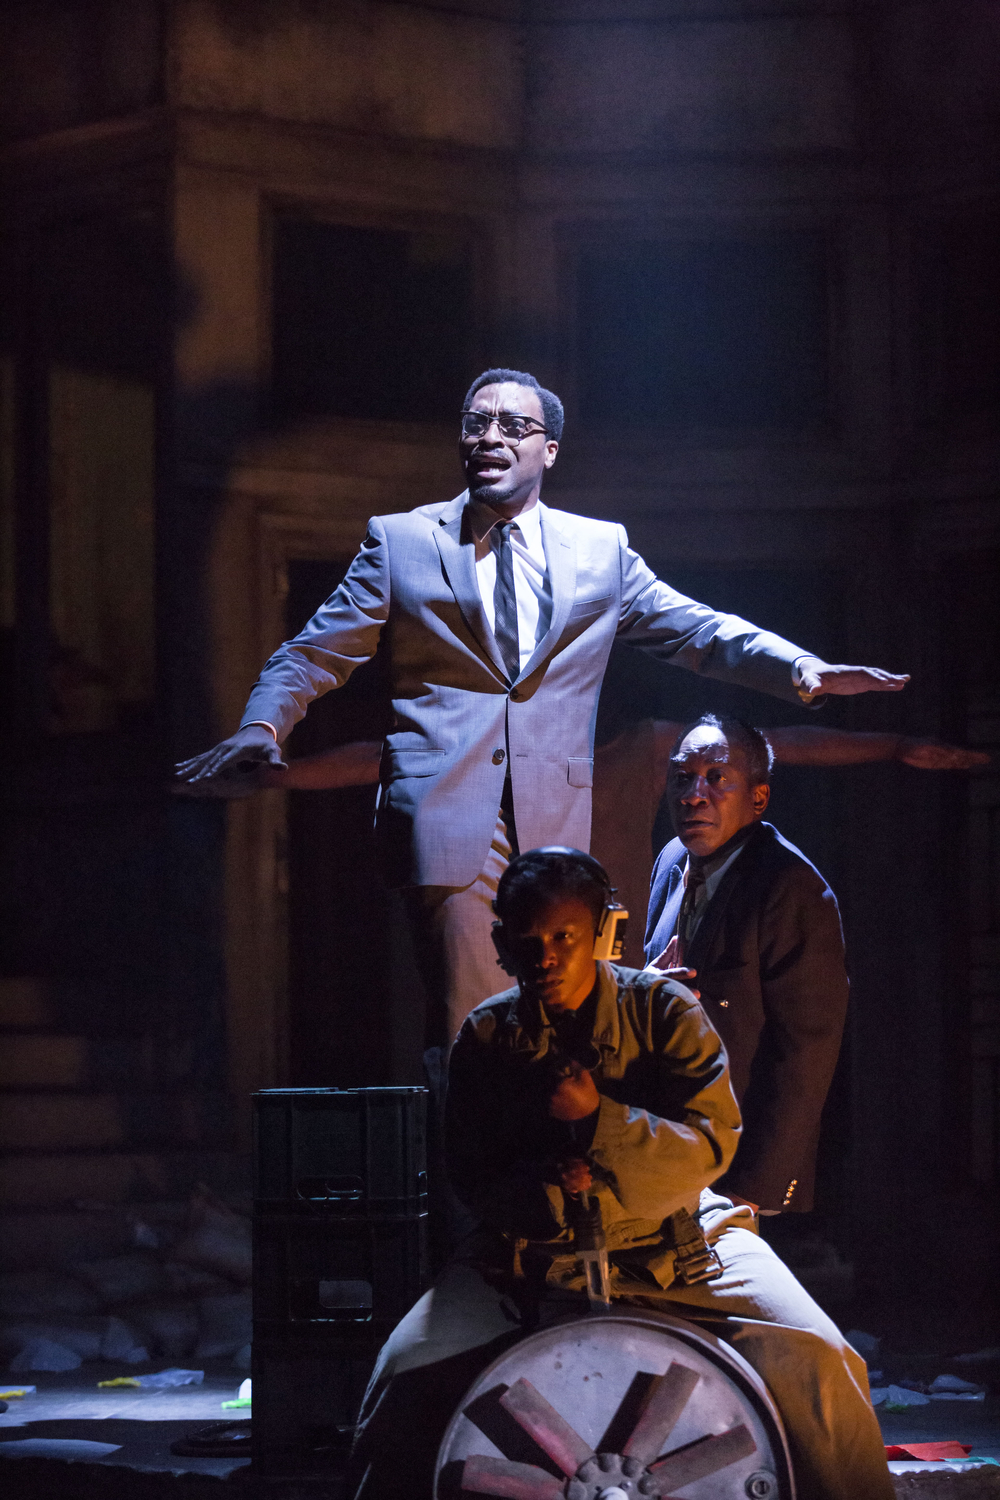 13 A Season in the Congo – Sandra Reid as pilot, Chiwetel Ejiofor as Patrice Lumumba and Joseph Mydell as Kasavubu. Photo by Johan Persson..jpg